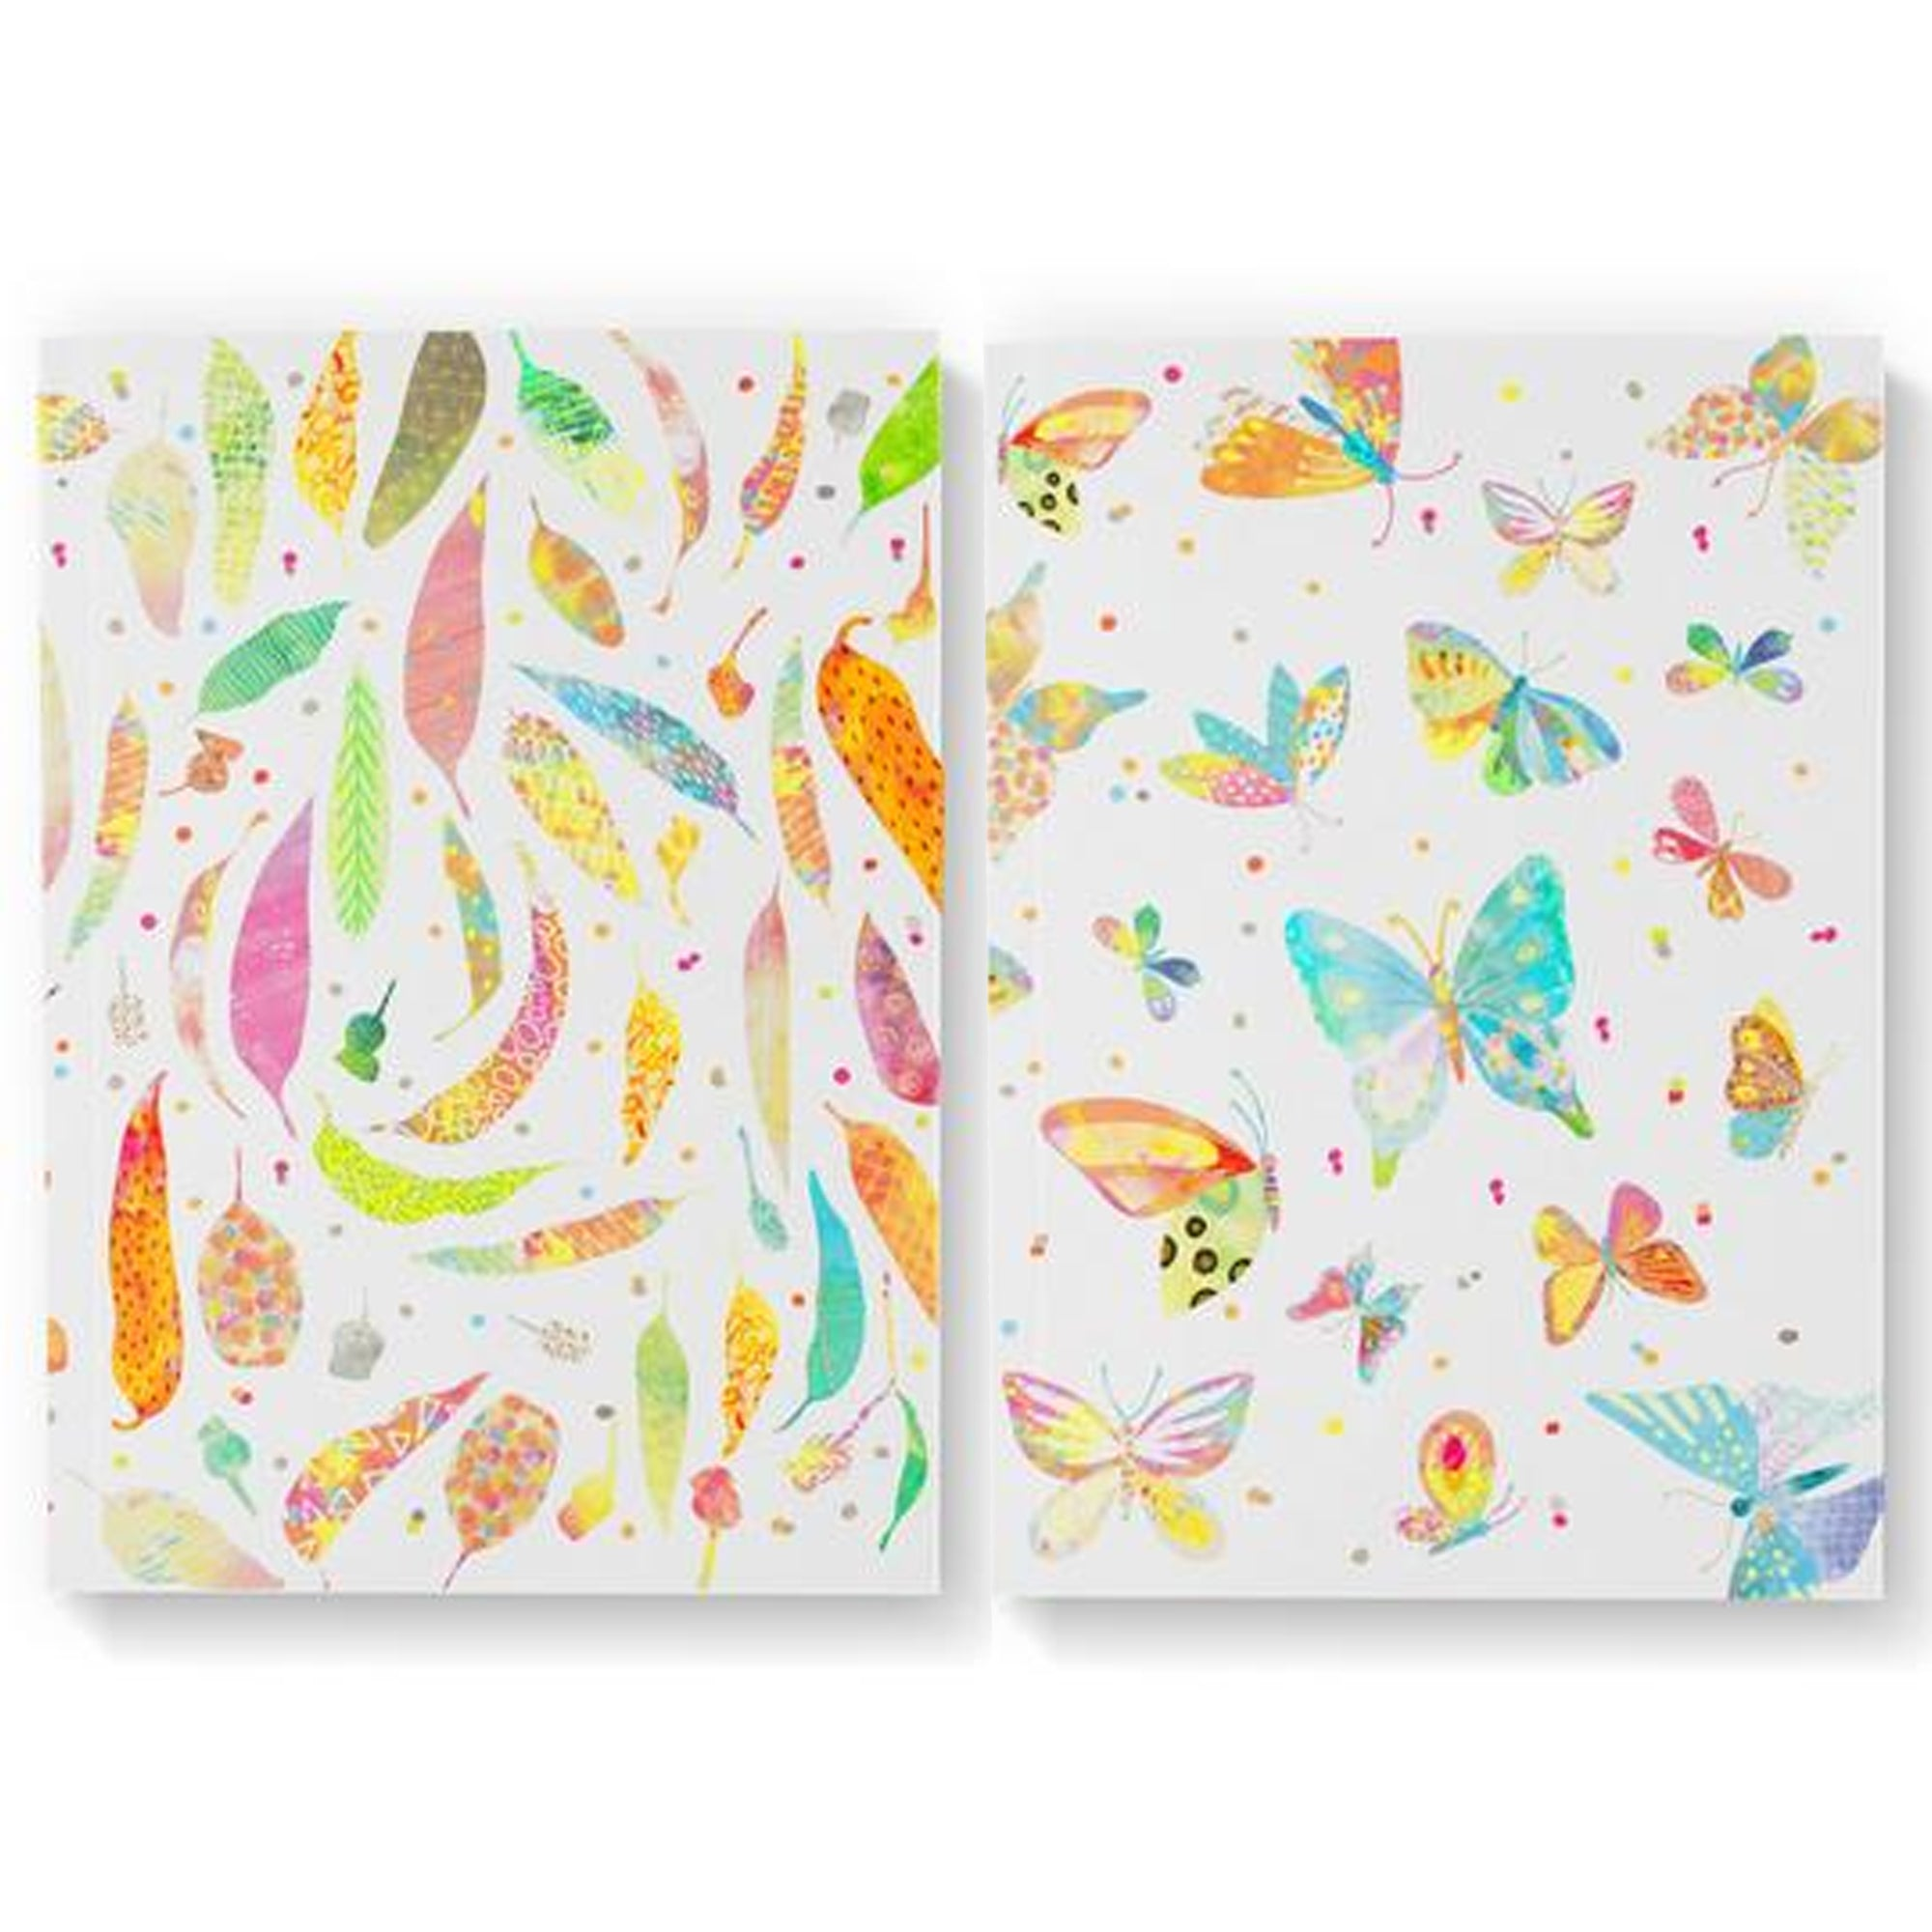 Braw Paper Co. - Gum Leaves and Butterflies Blank Pack of 2 Notebooks (tri034)